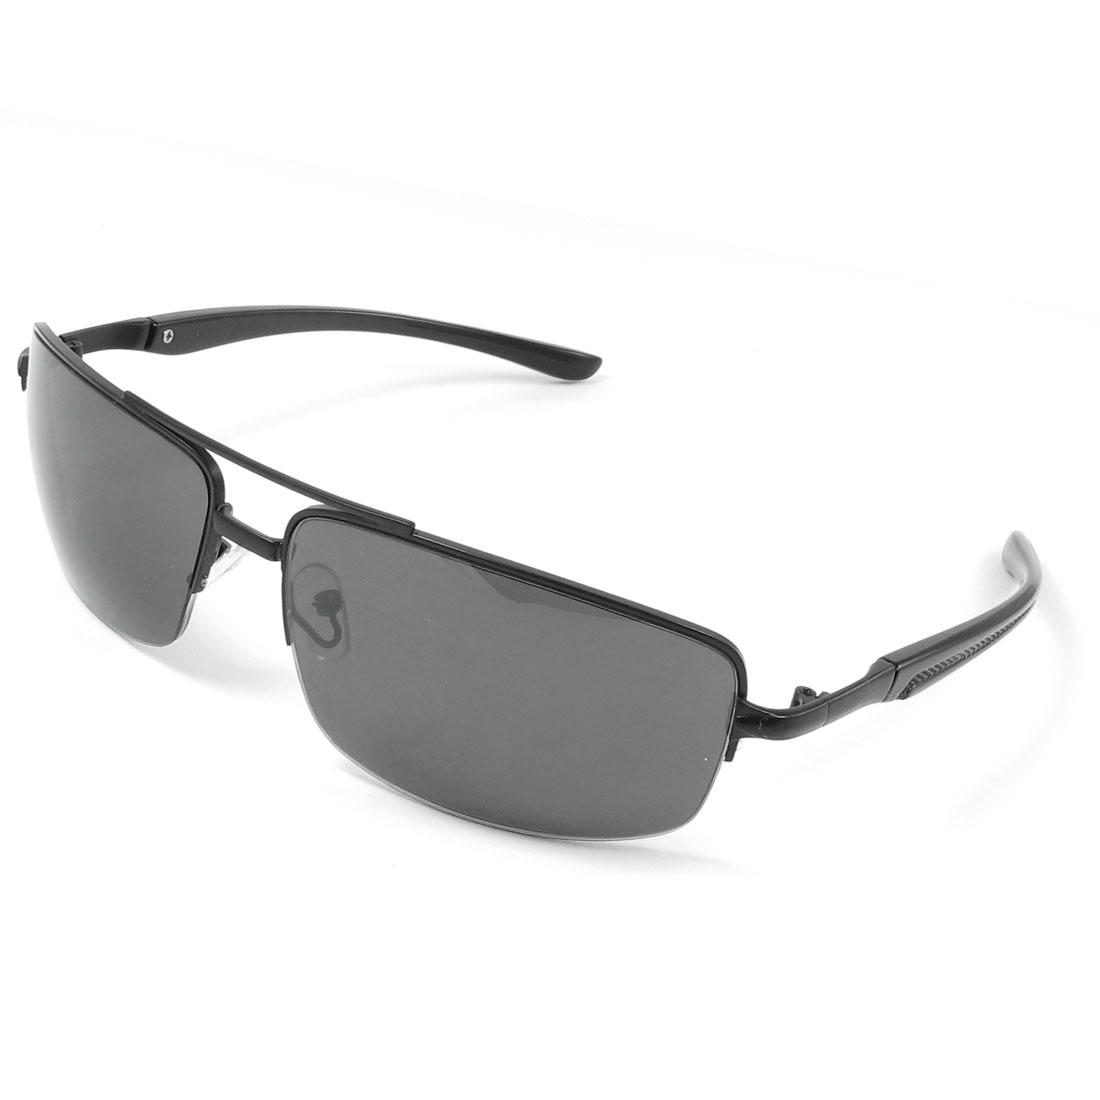 Black Metal Half Rim Nose Pad Colored Shaped Lens Sunglasses for Man